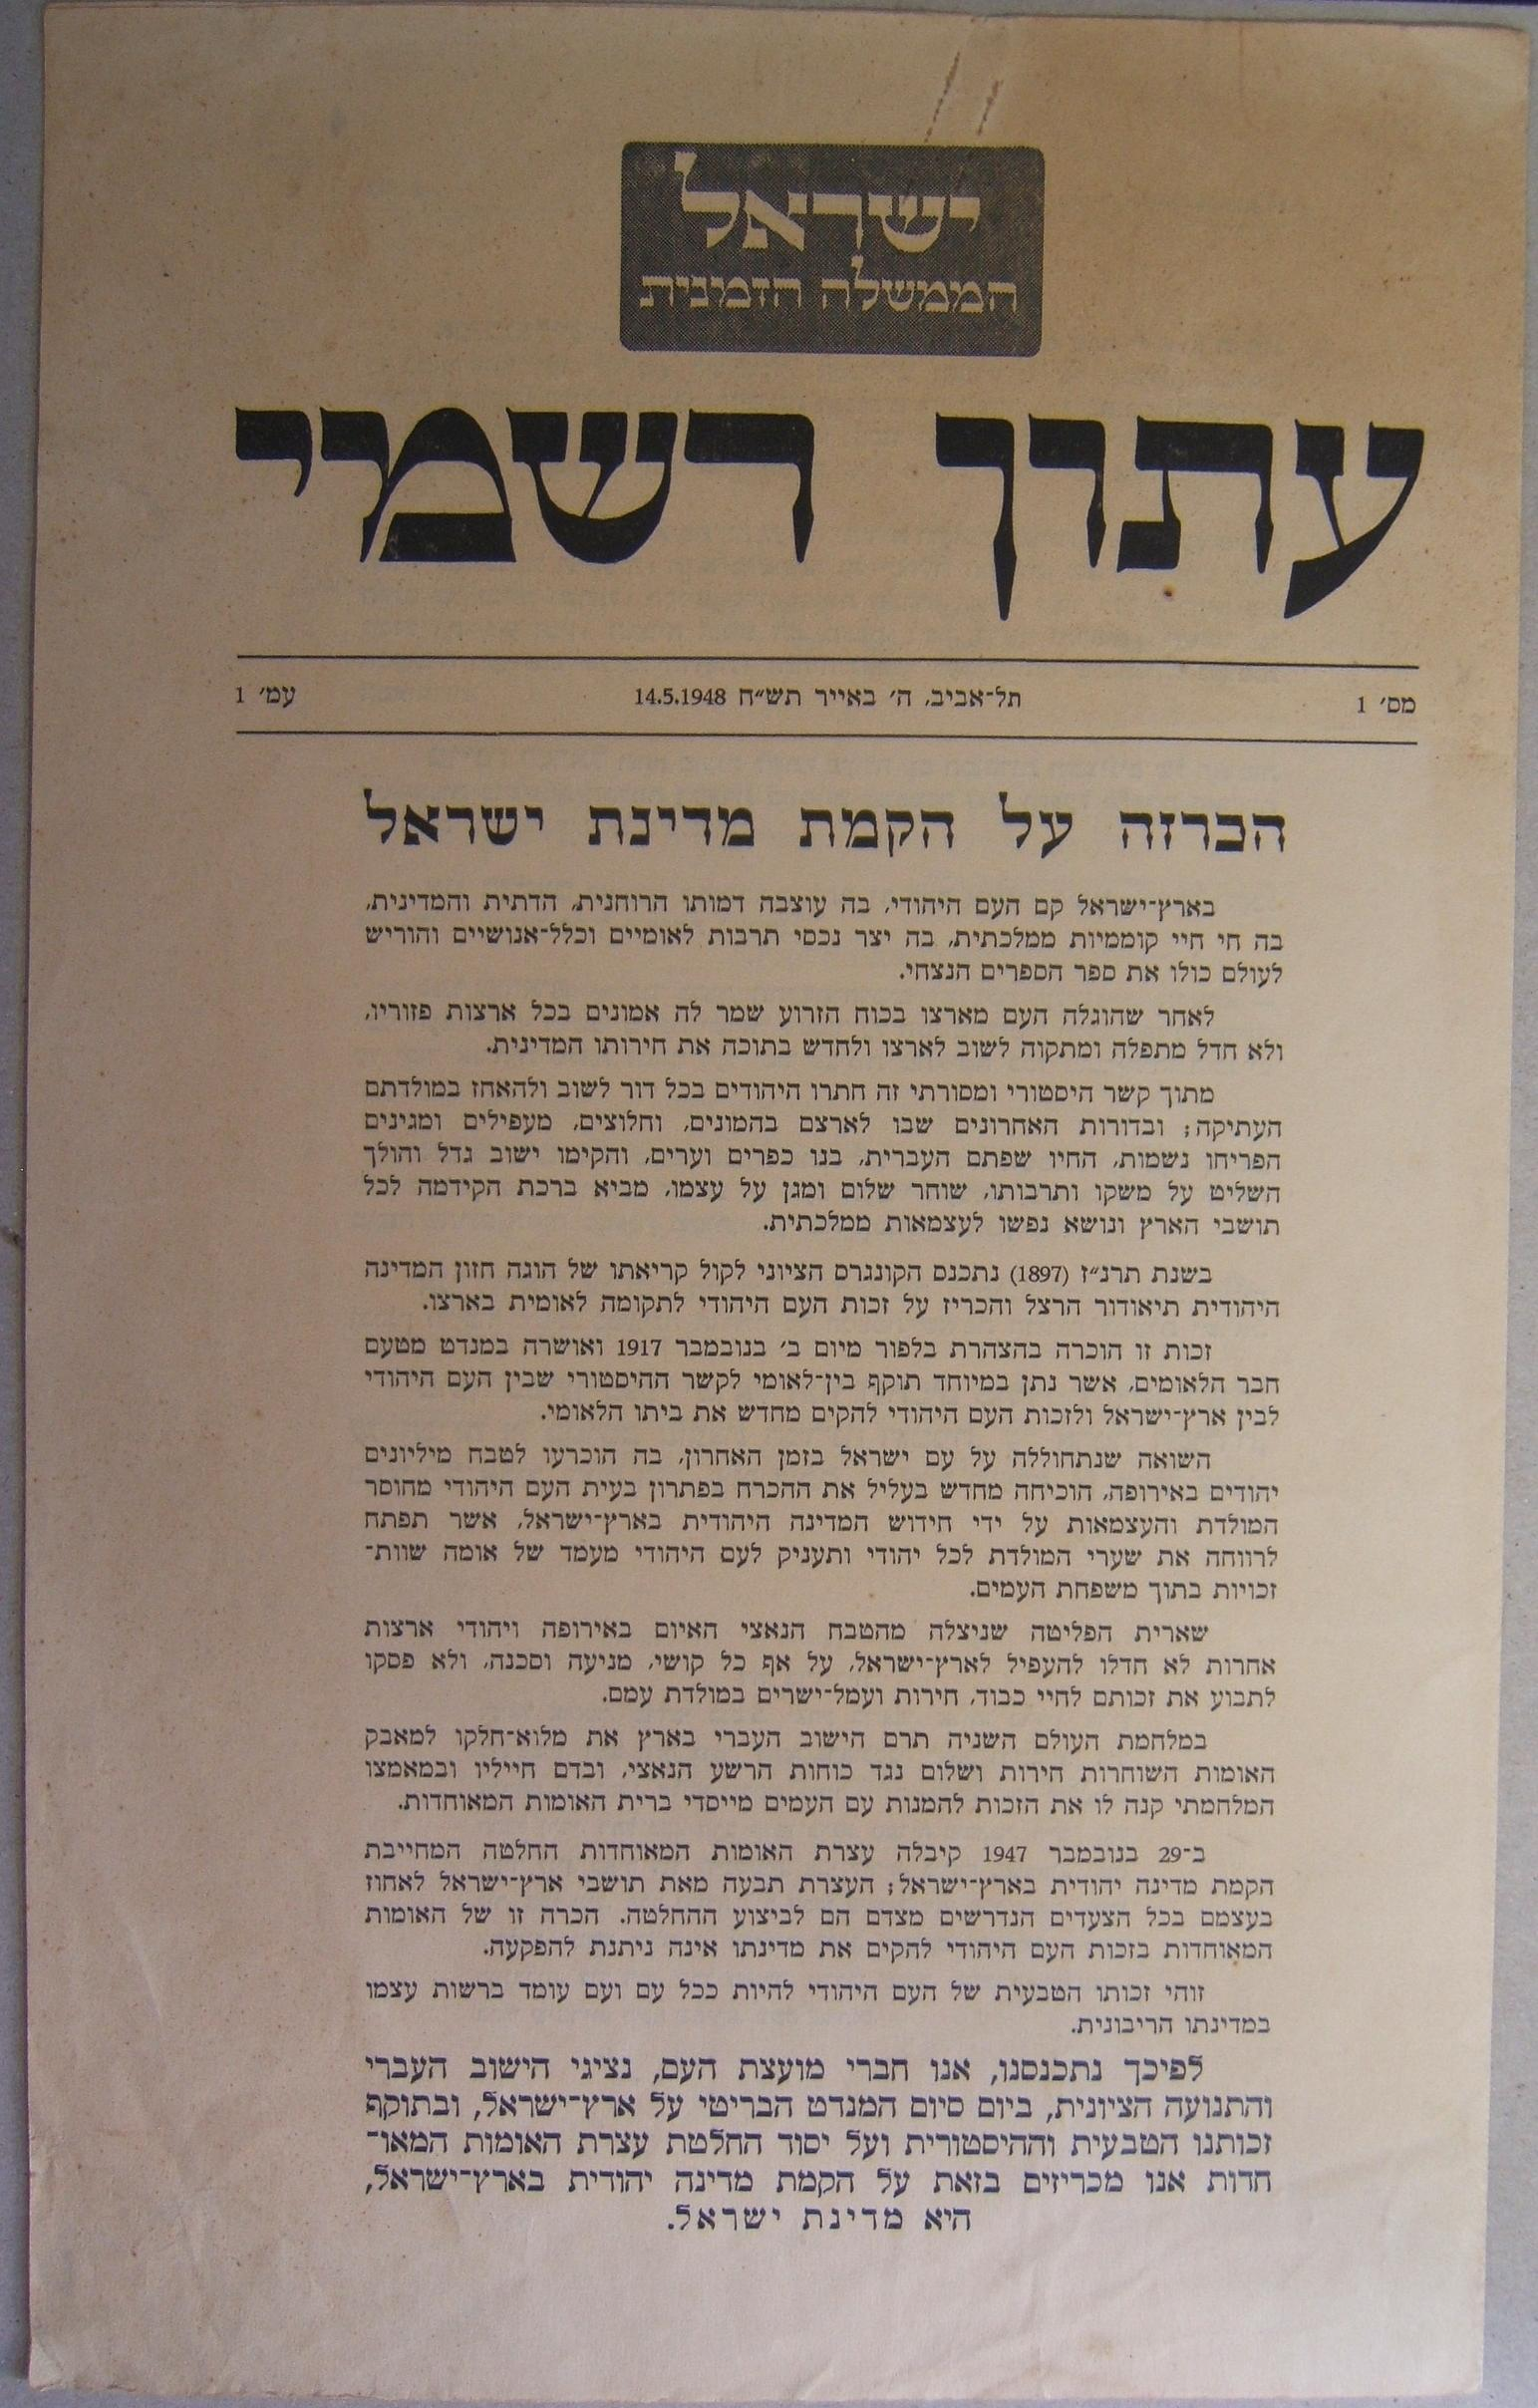 Official Newspaper #1 of the Provisional Government of Israel, dated 14 May 1948; 4 pages; printed by